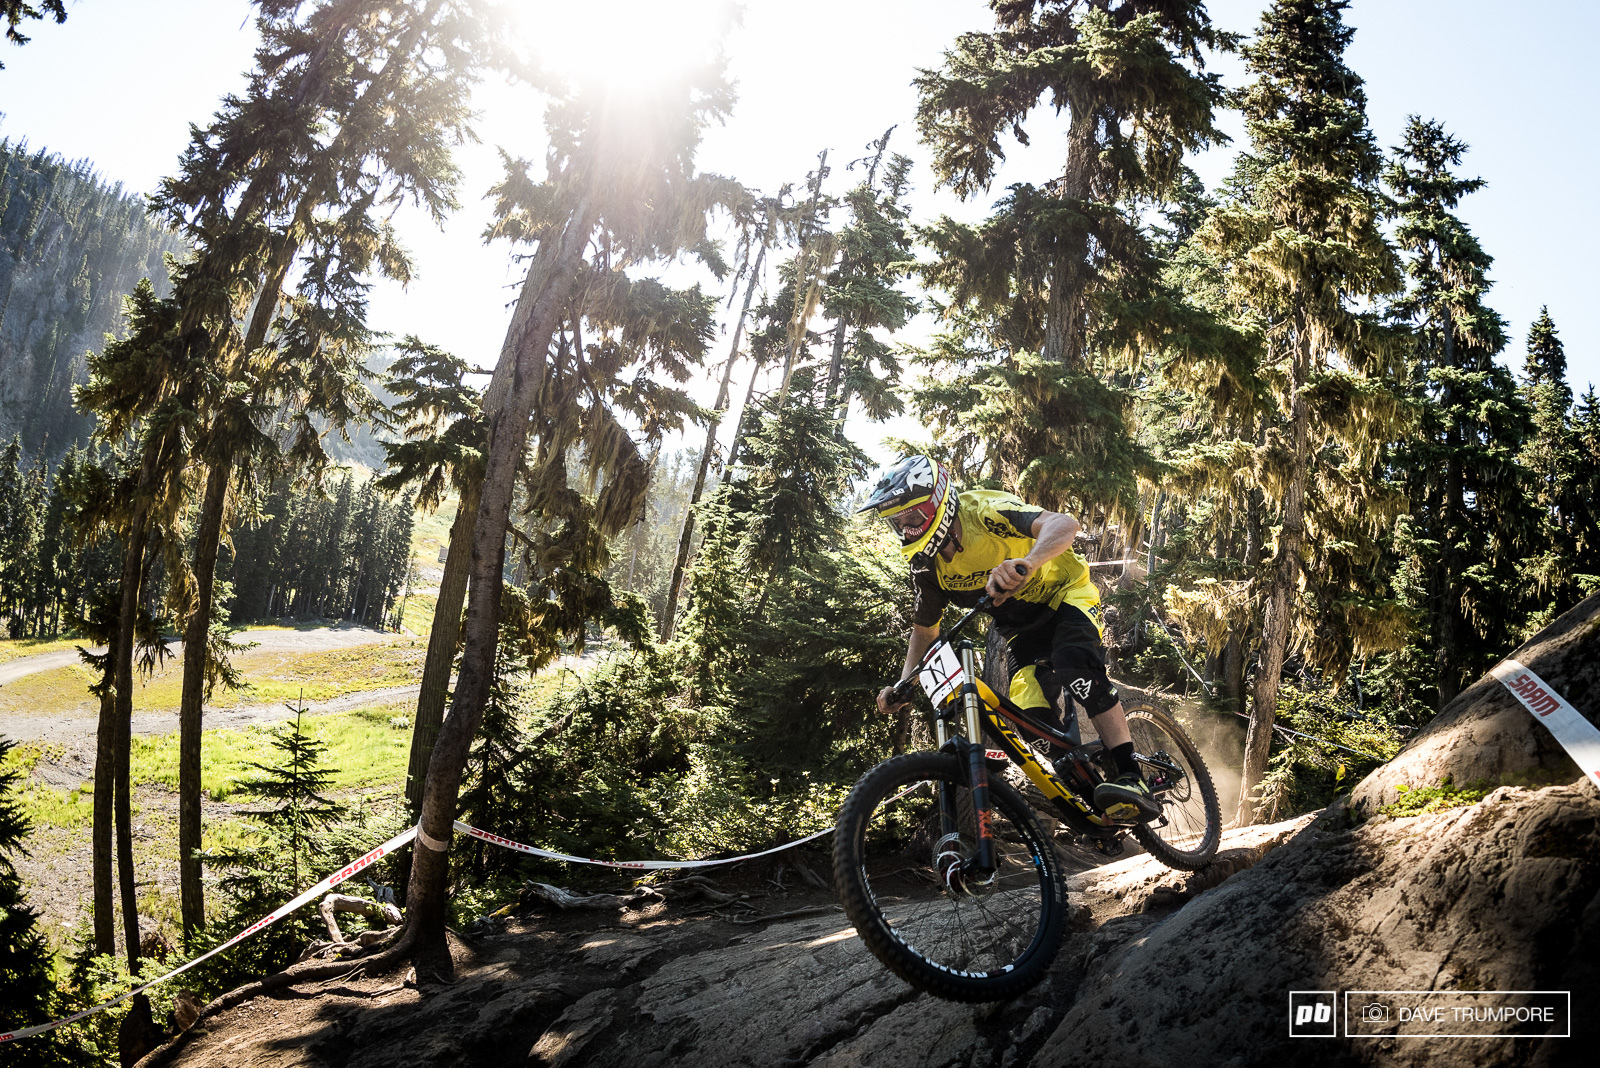 Sam Blenkinsop has quietly made a name for himself as one of the strongest and finest riders out there so it was never in doubt that he had what takes to perform in the Garbo DH.